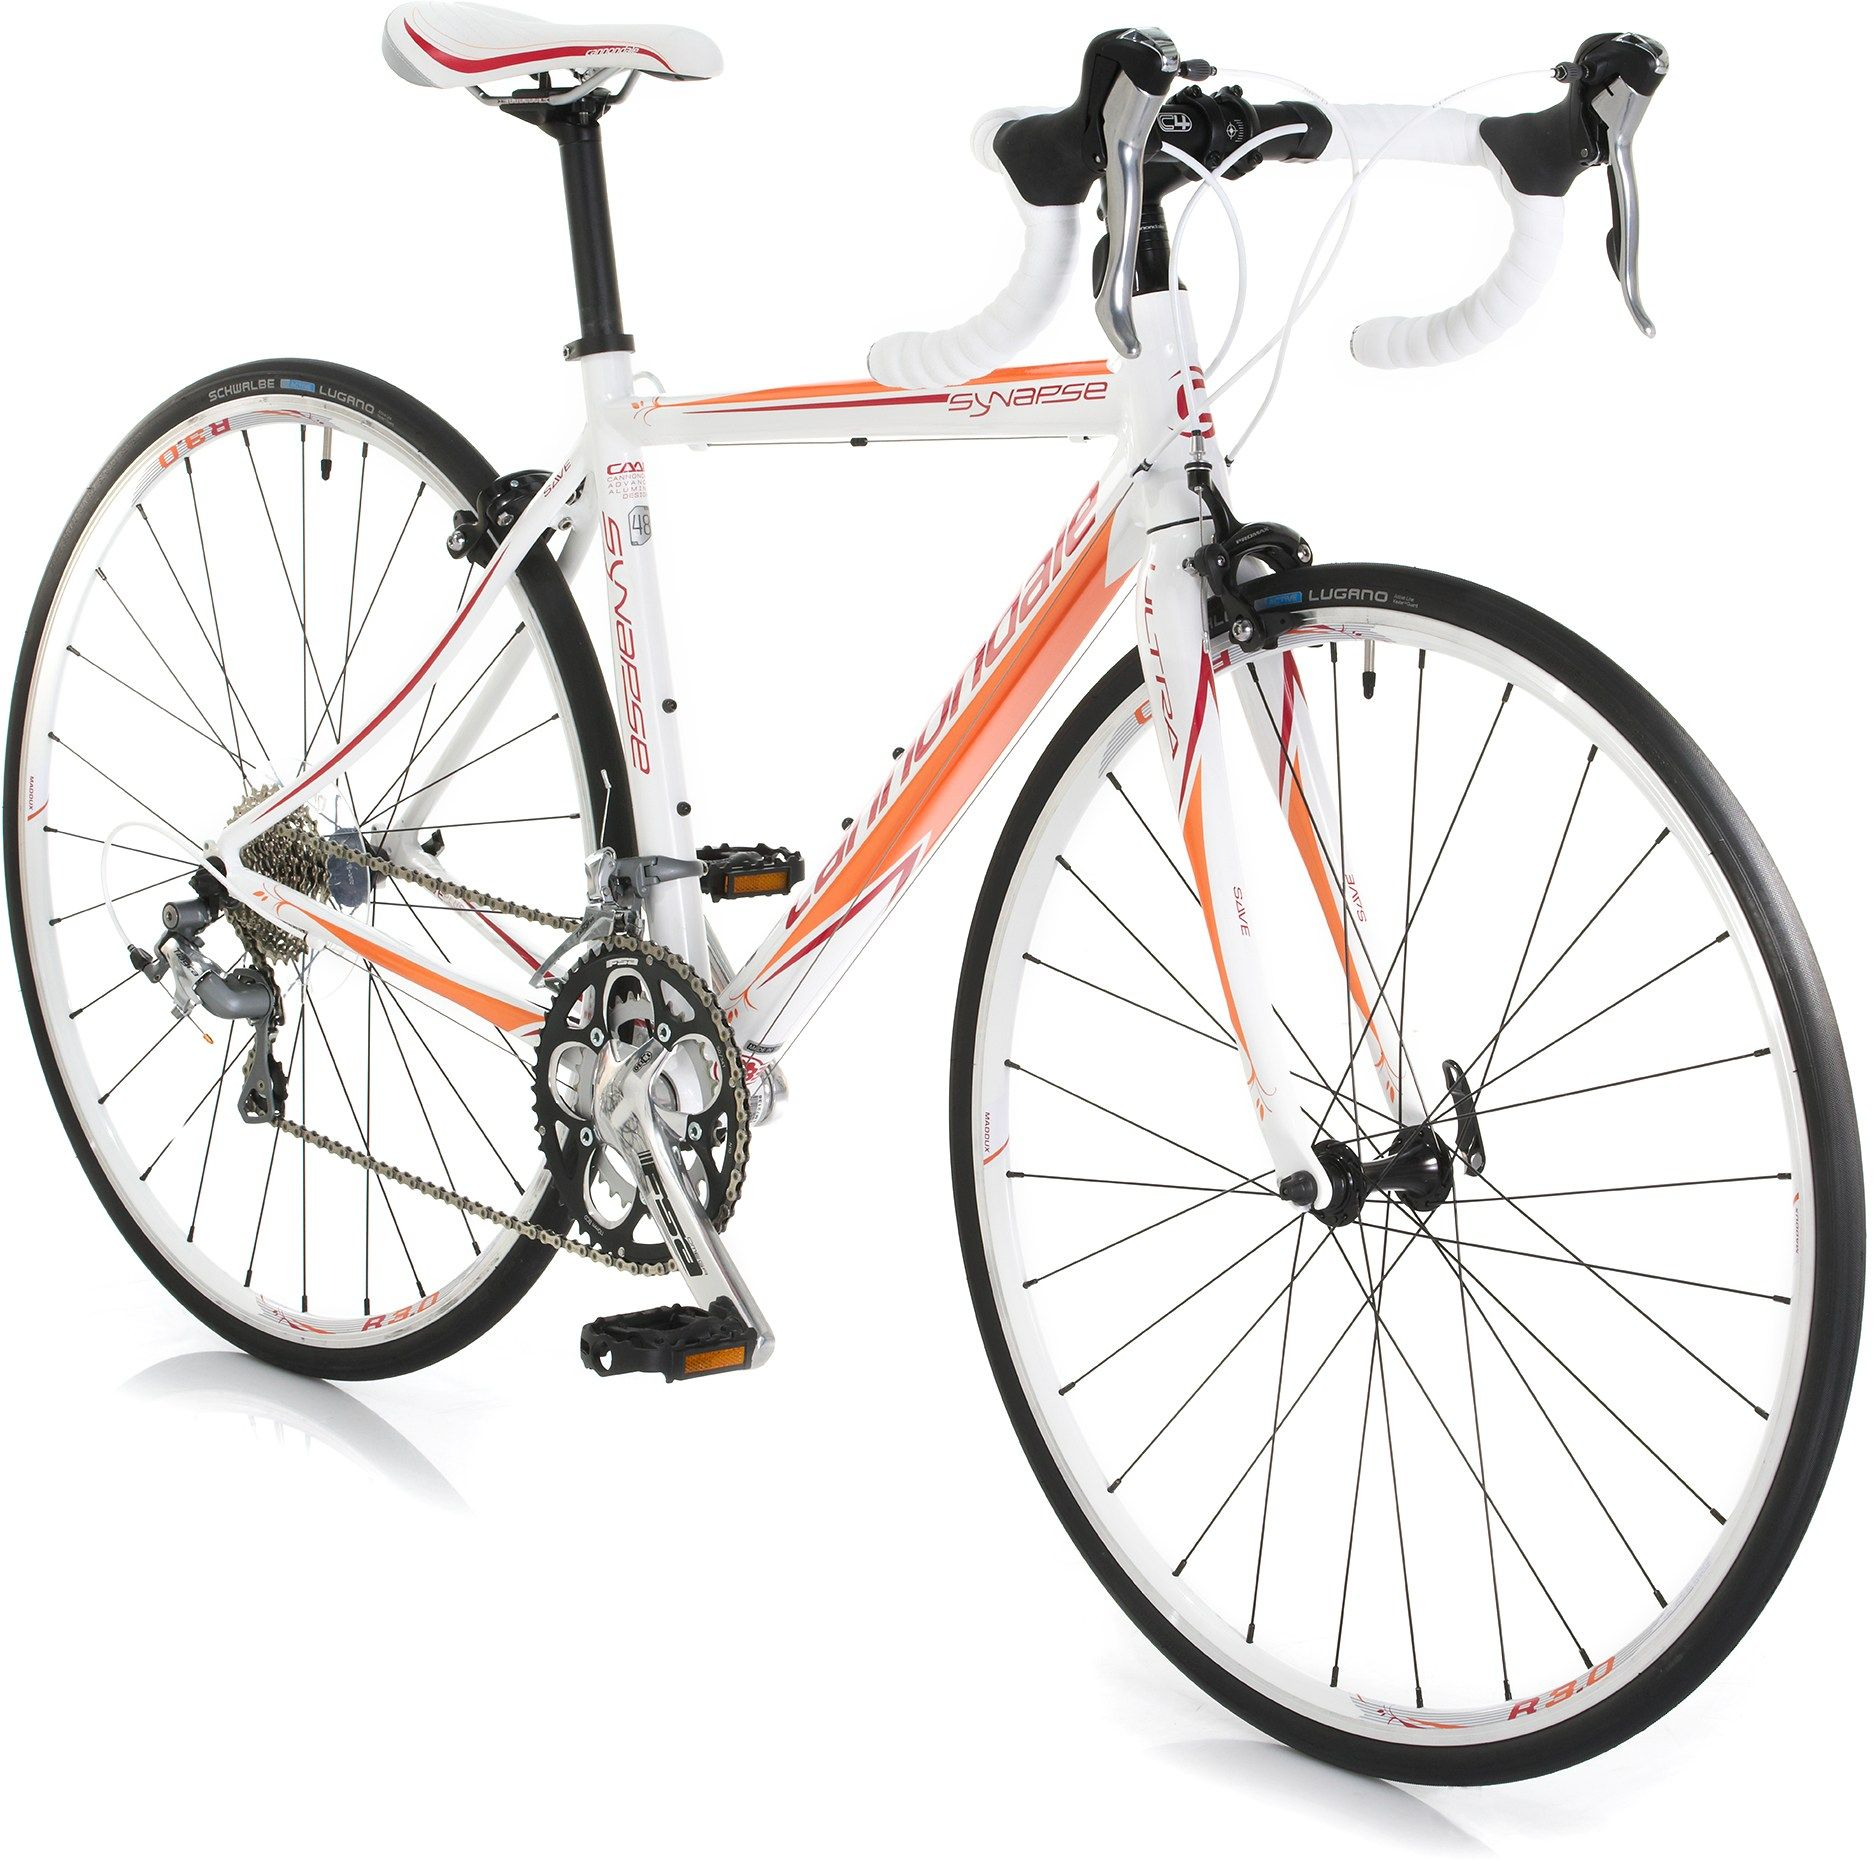 8797cfaa8d3 Made for Women & Made to Win — 2013 Cannondale Synapse Alloy 6 Compact  Women's Bike. #REIswimbikerun